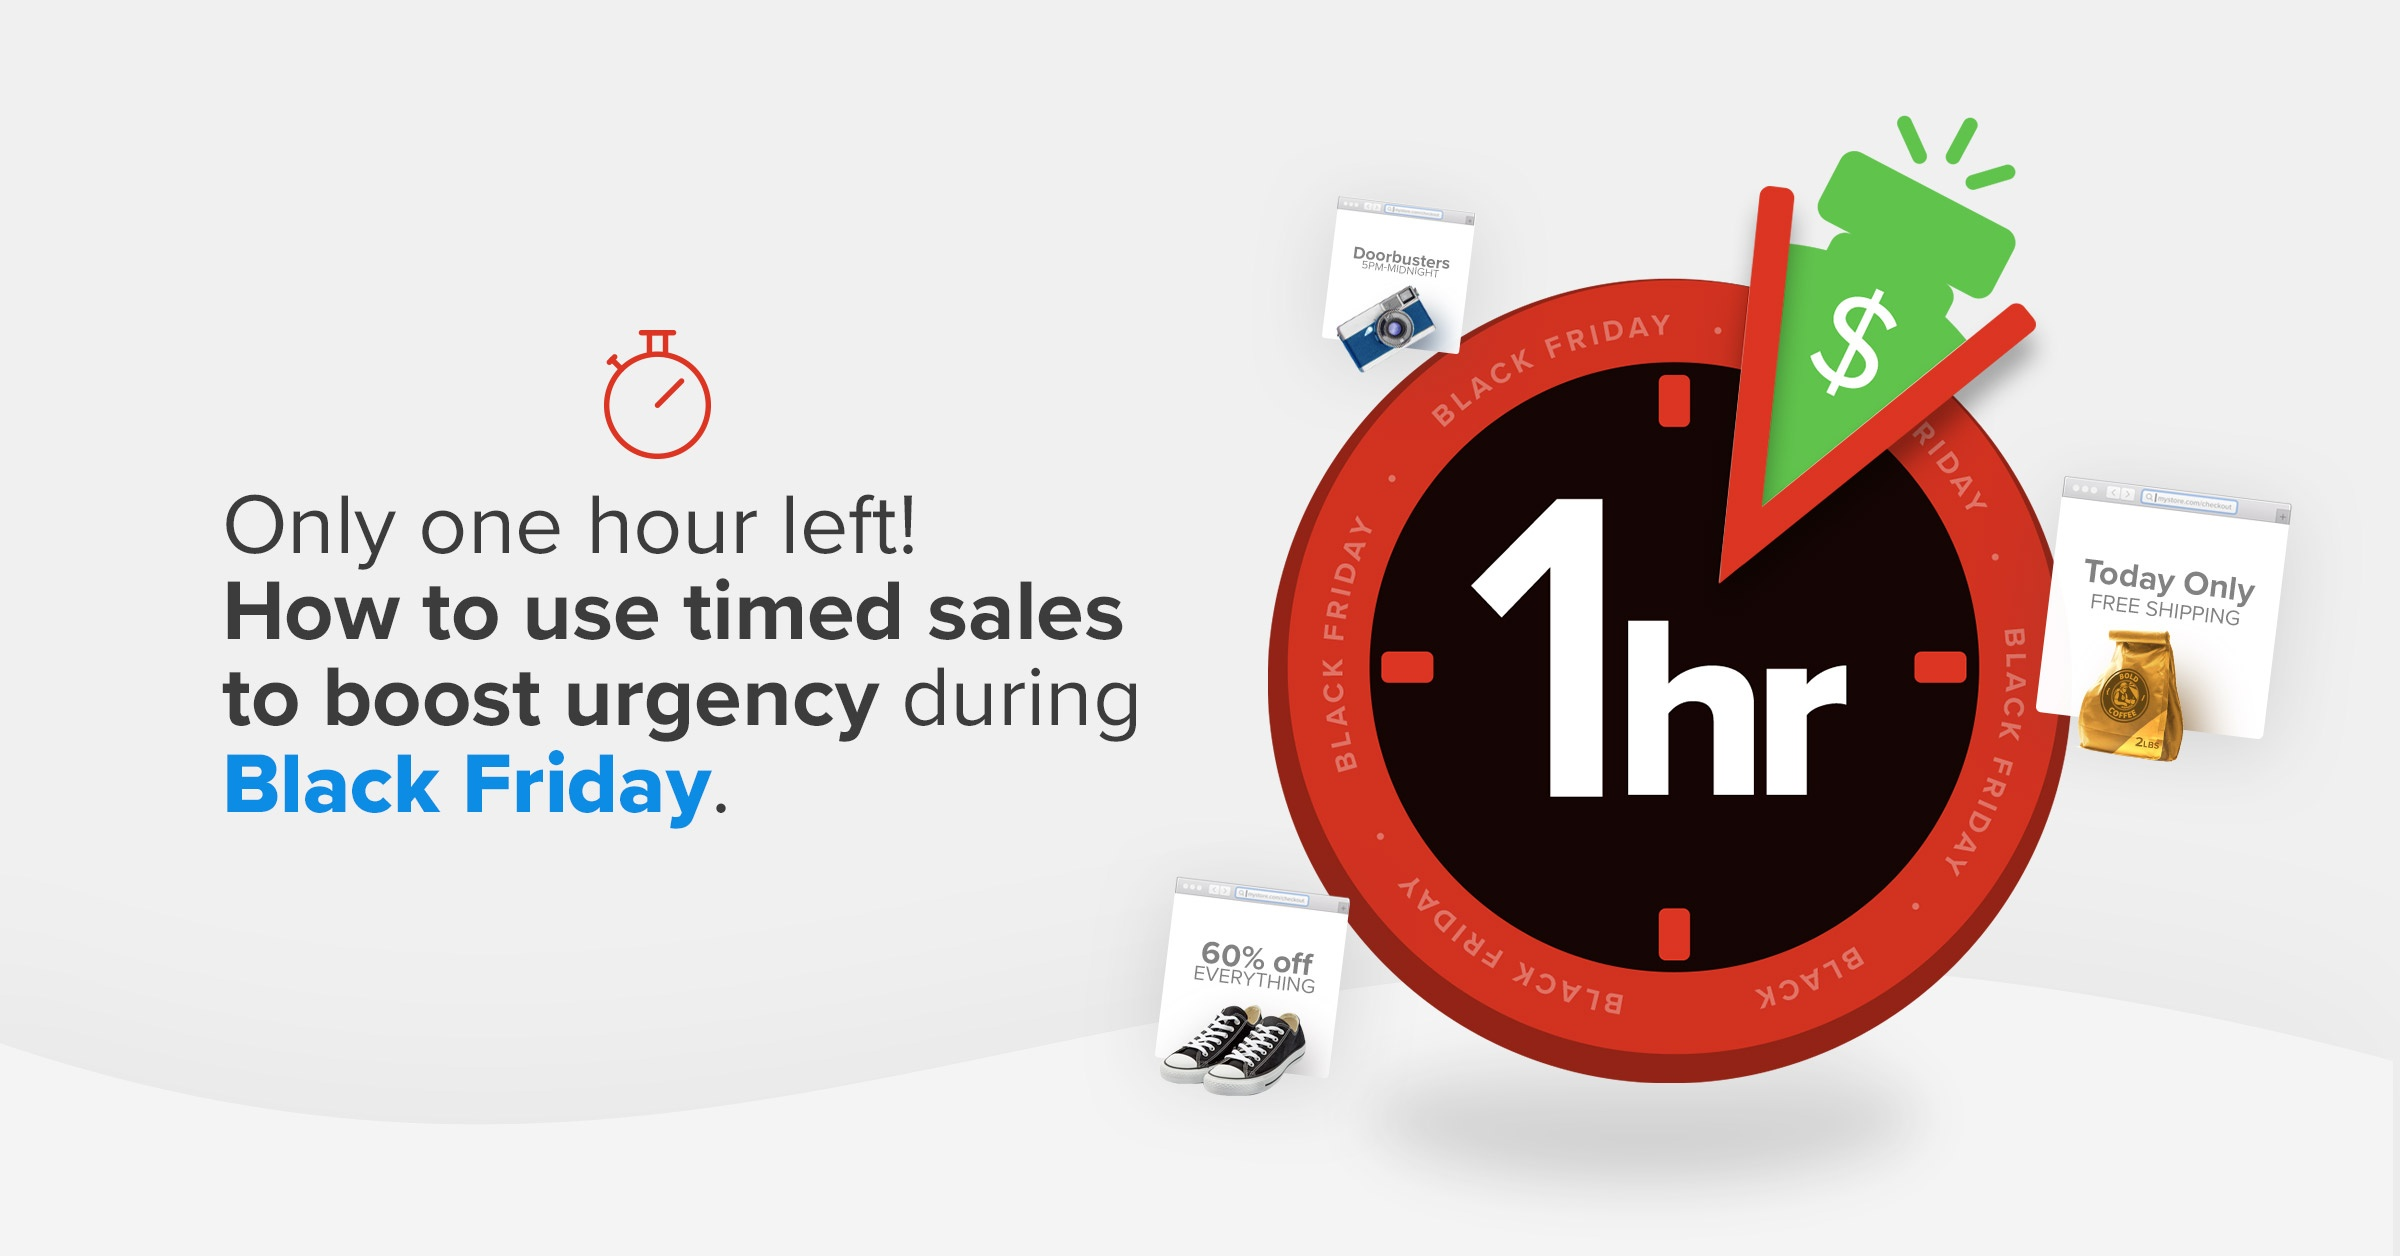 Use timed sales to boost urgency